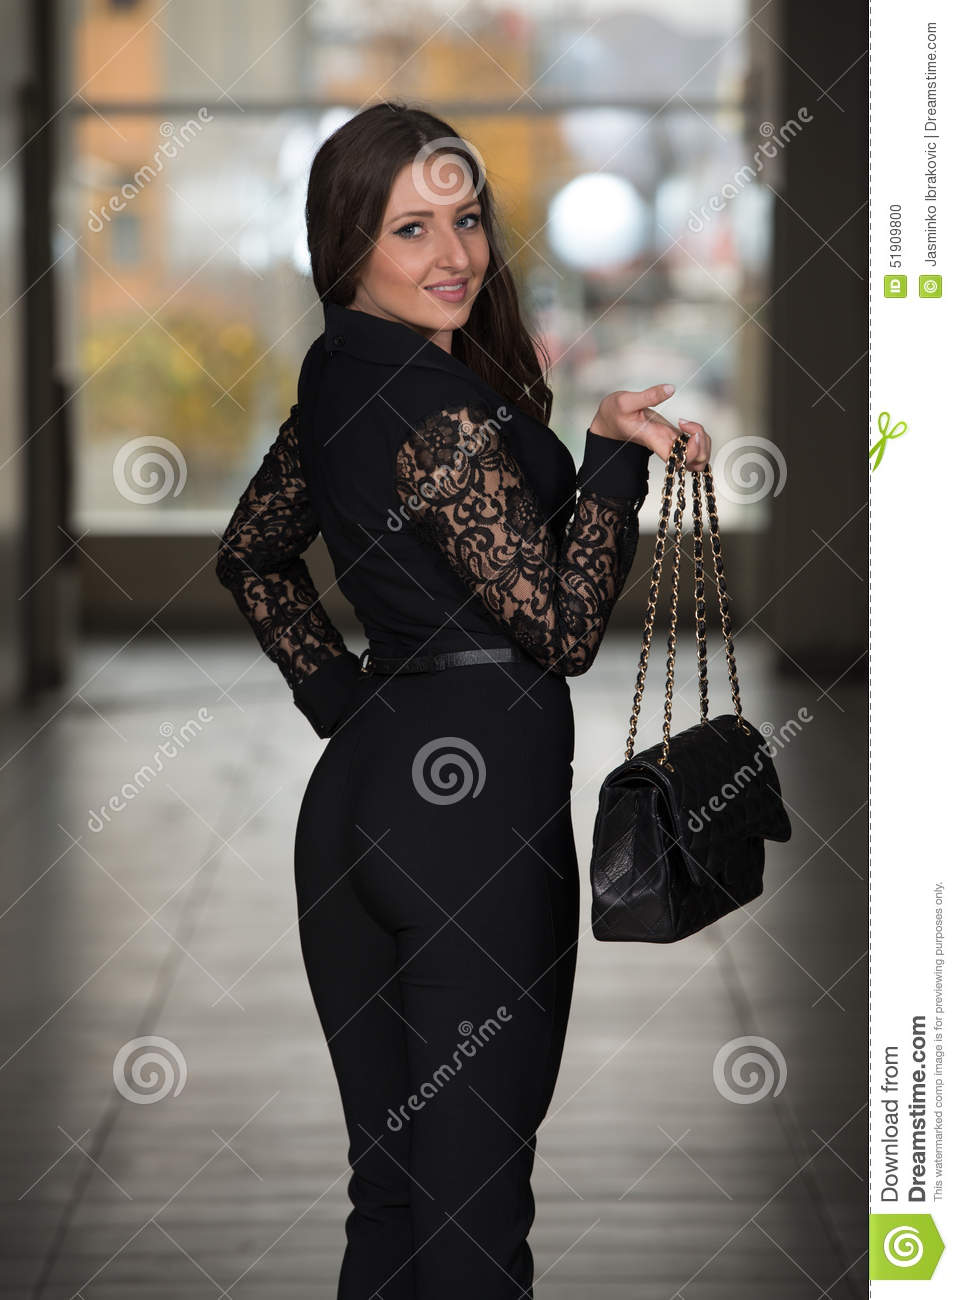 Business Woman In Suit At The Shopping Mall Stock Photo Image 51909800